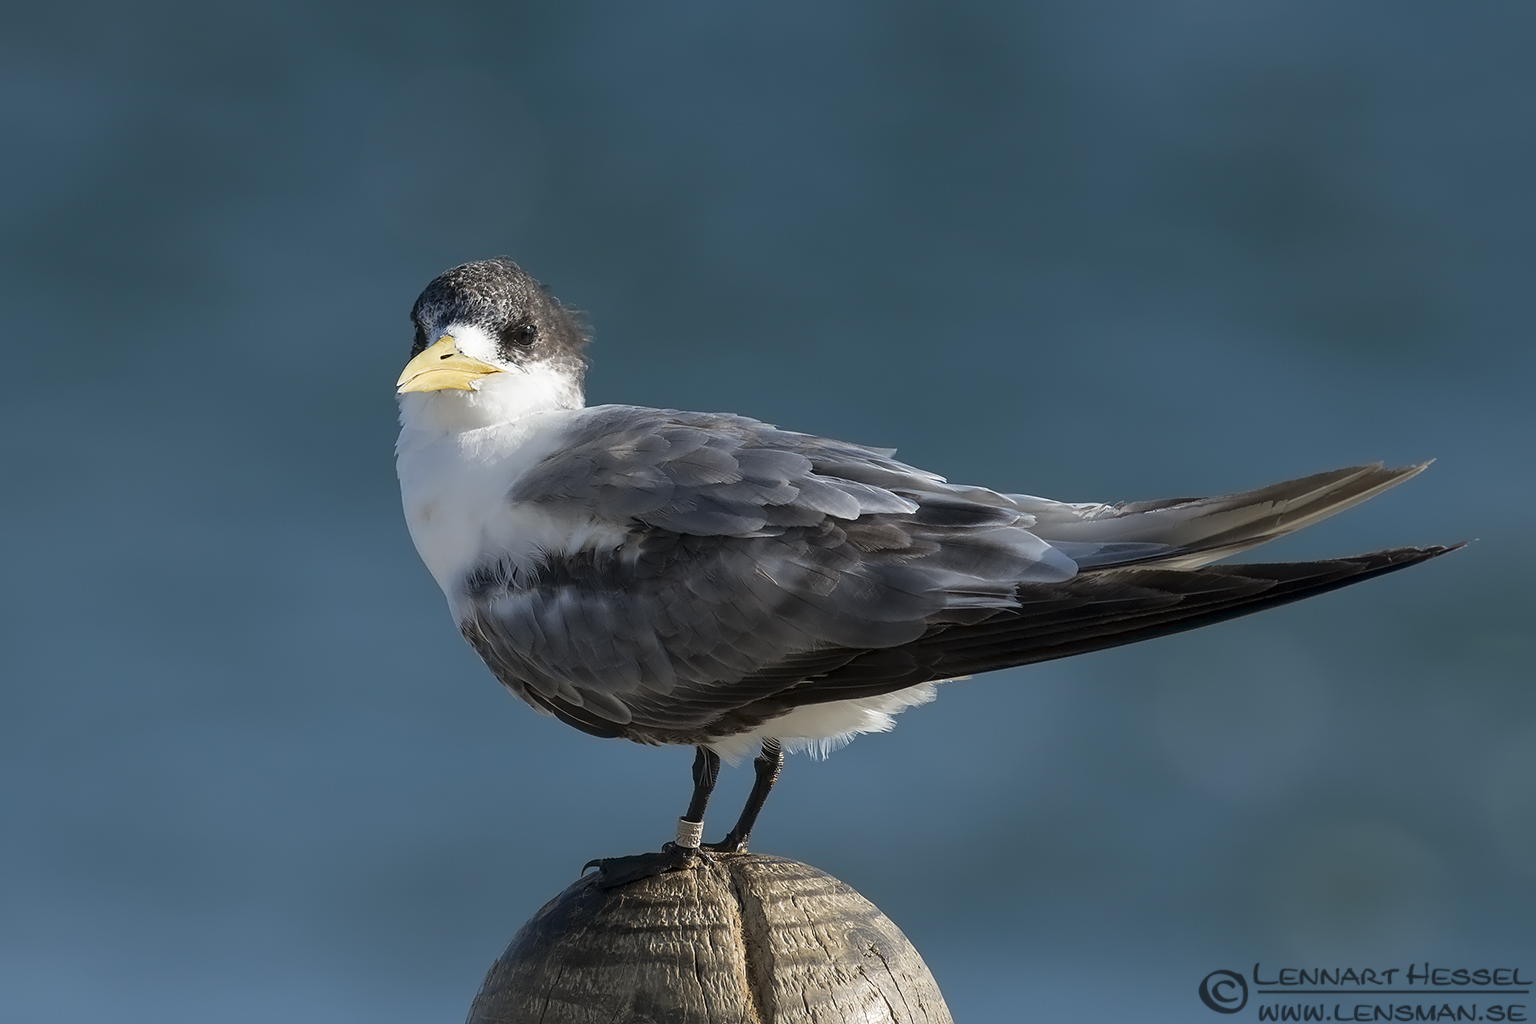 Crested Tern Australia Victoria Lakes Entrance